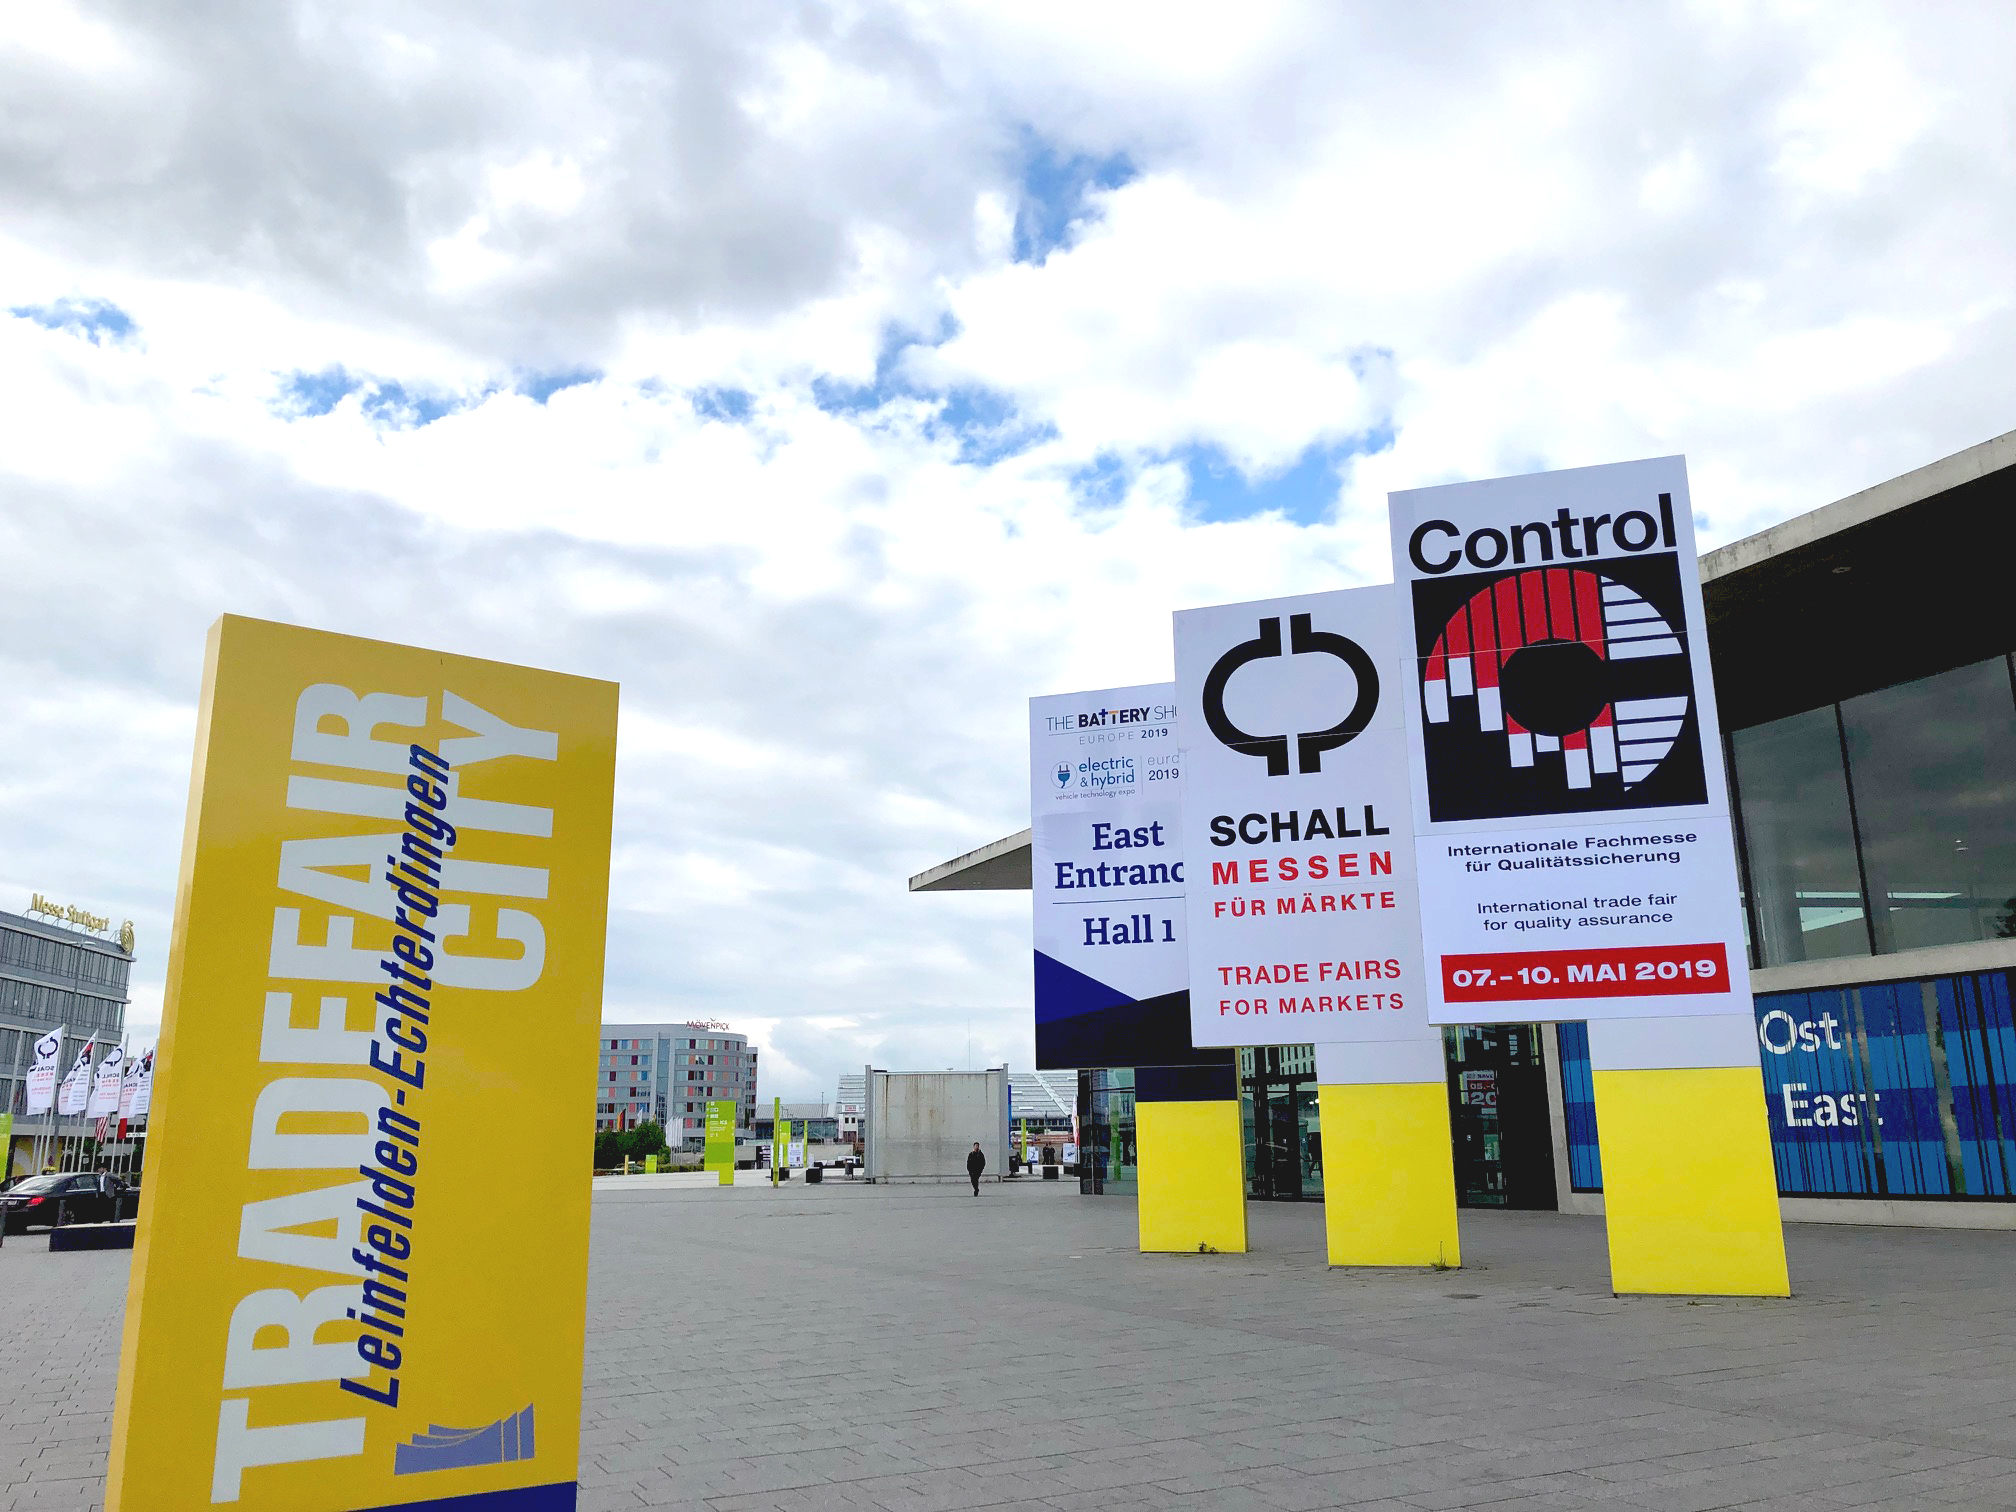 The Control trade fair has taken place annually in Germany since 1987.